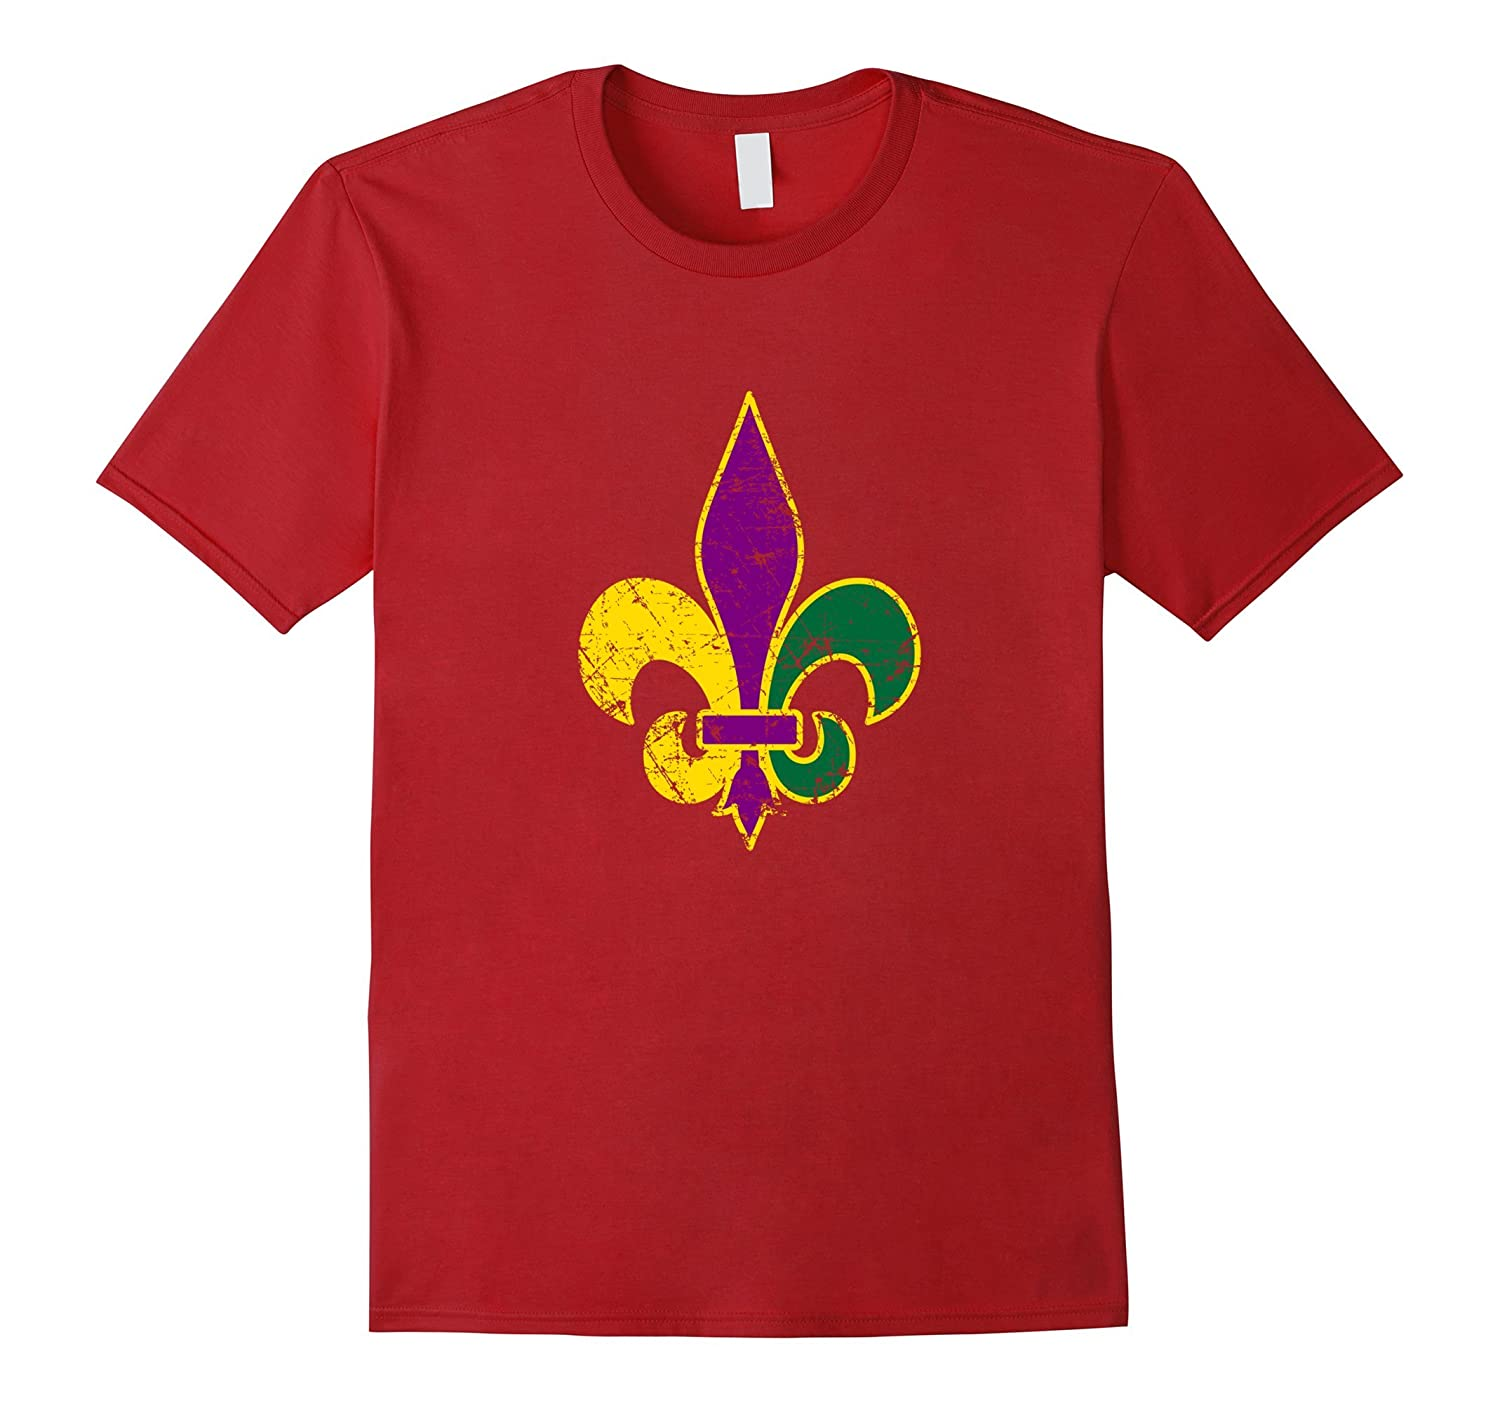 Mardi Gras Shirt, Funny Cute Simple Celebration Party Gift-TH